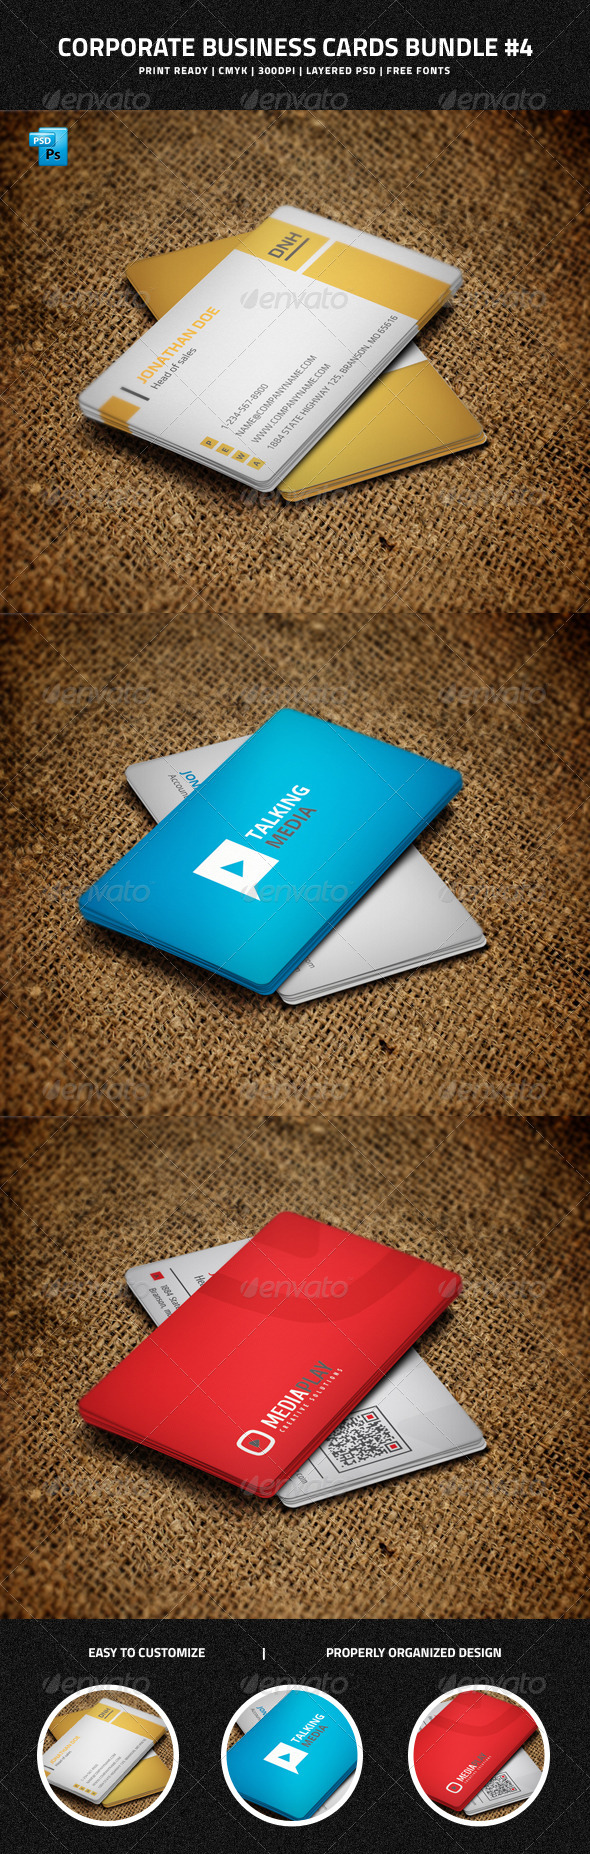 GraphicRiver Corporate Business Cards Bundle #4 7144660